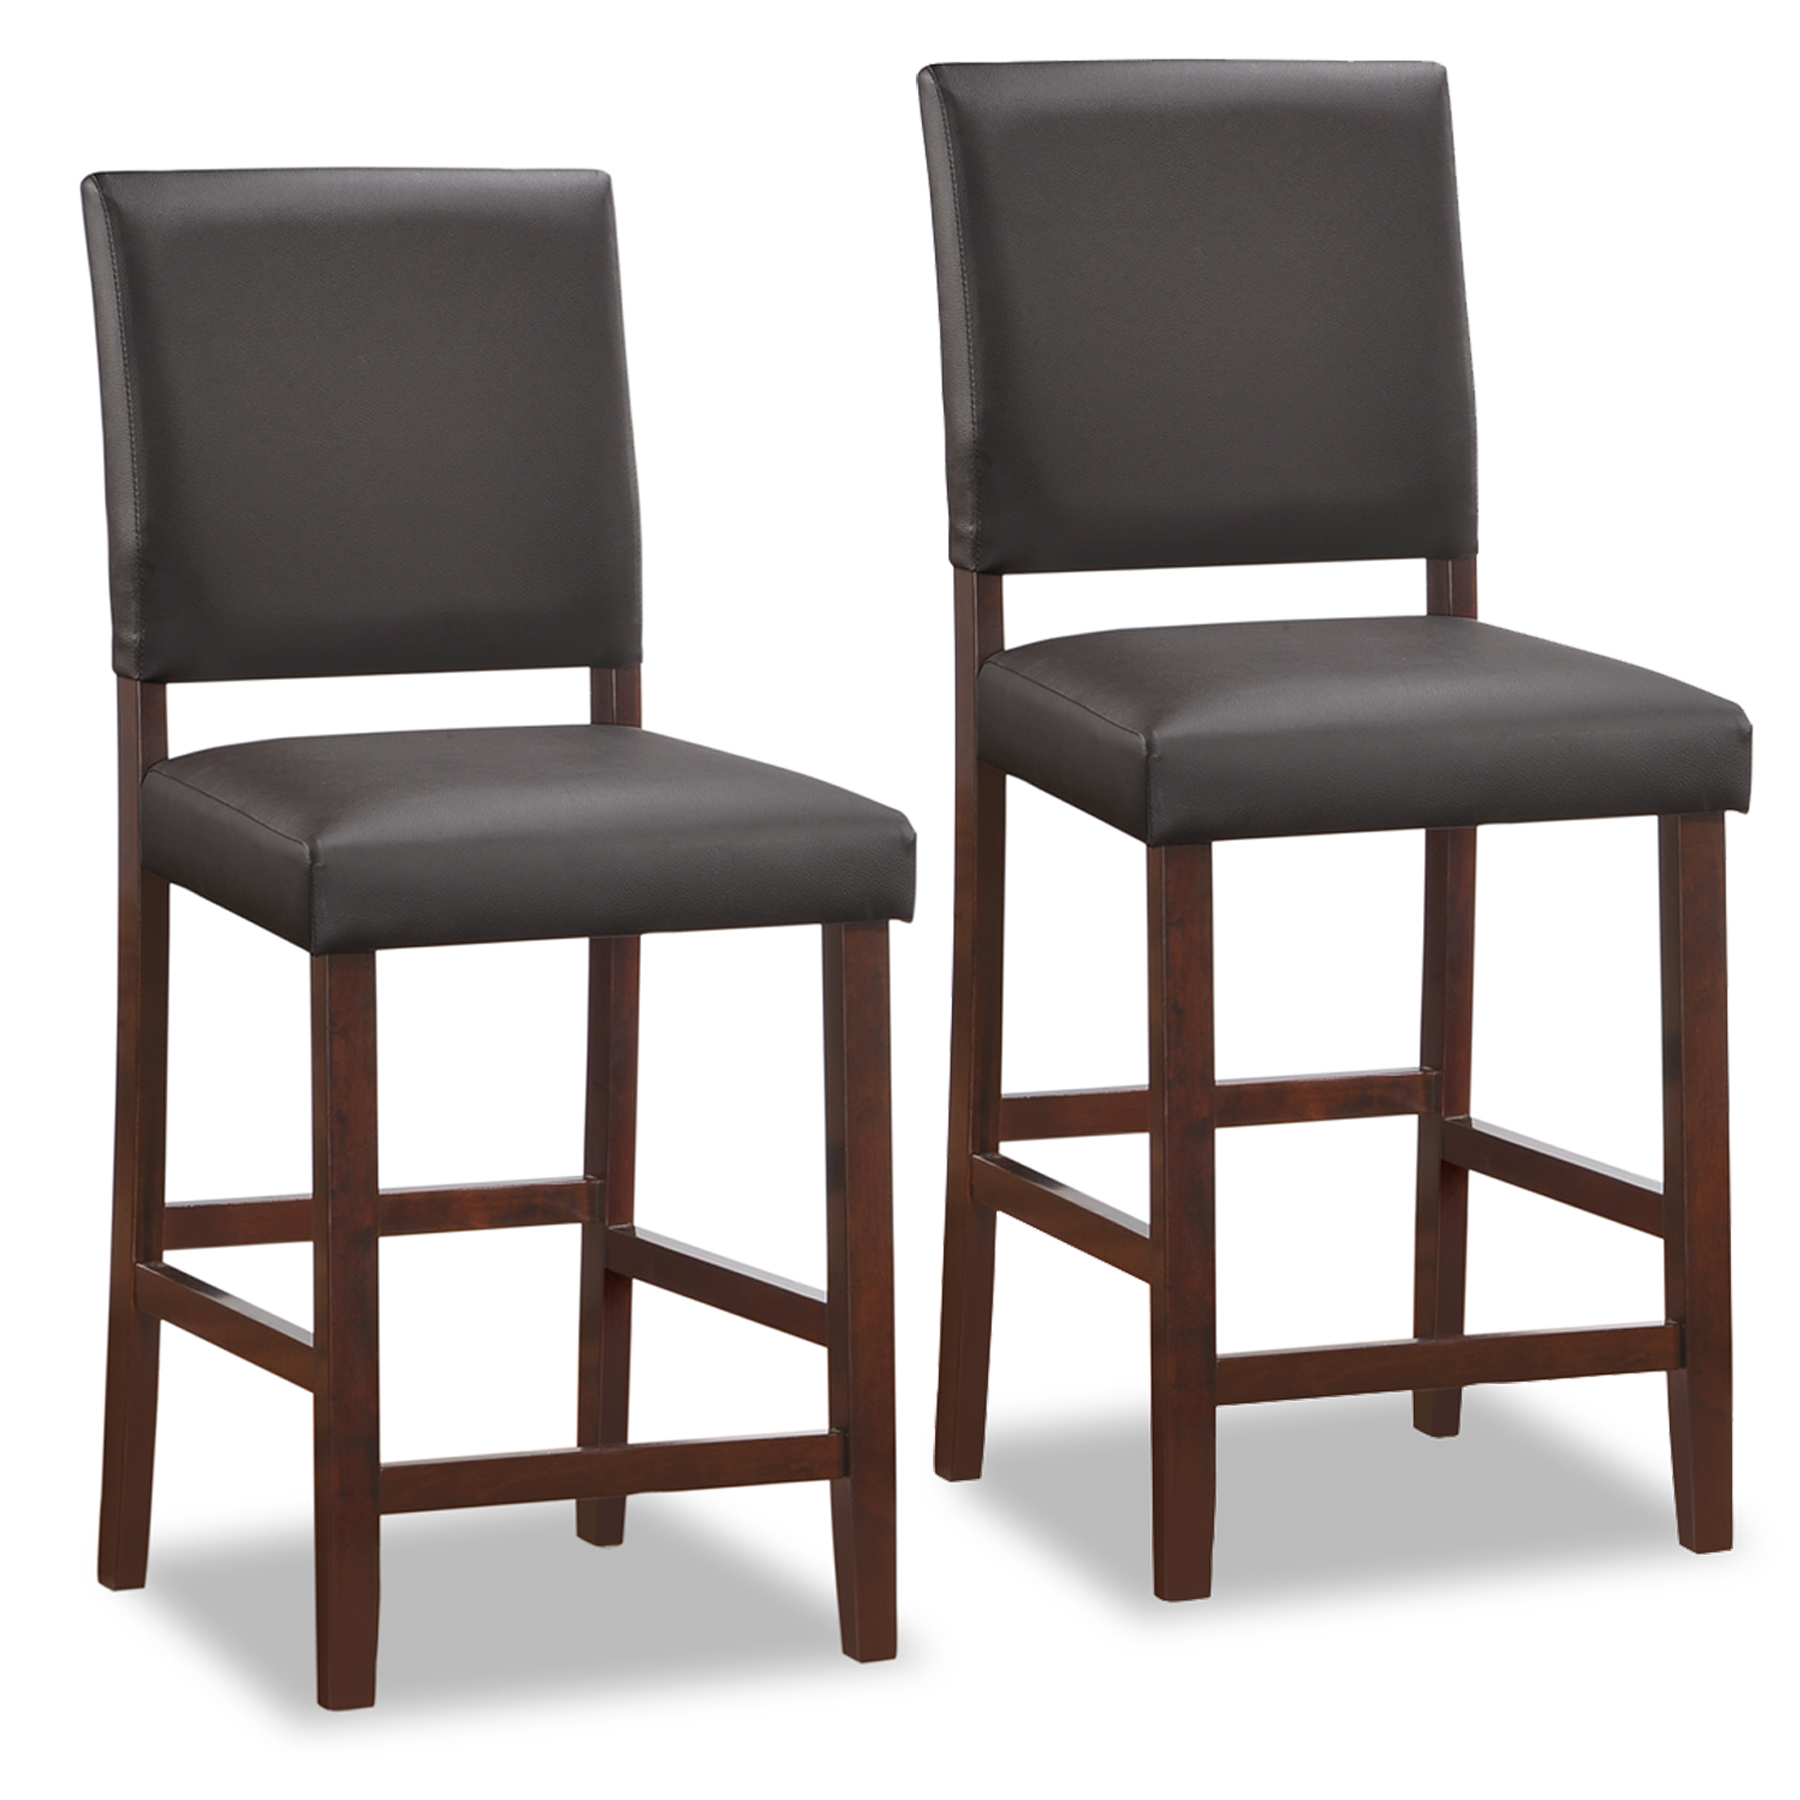 Wood Upholstered Back Counter Height Stool W/Ebony Faux Leather Seat  #10086CP/EB ...